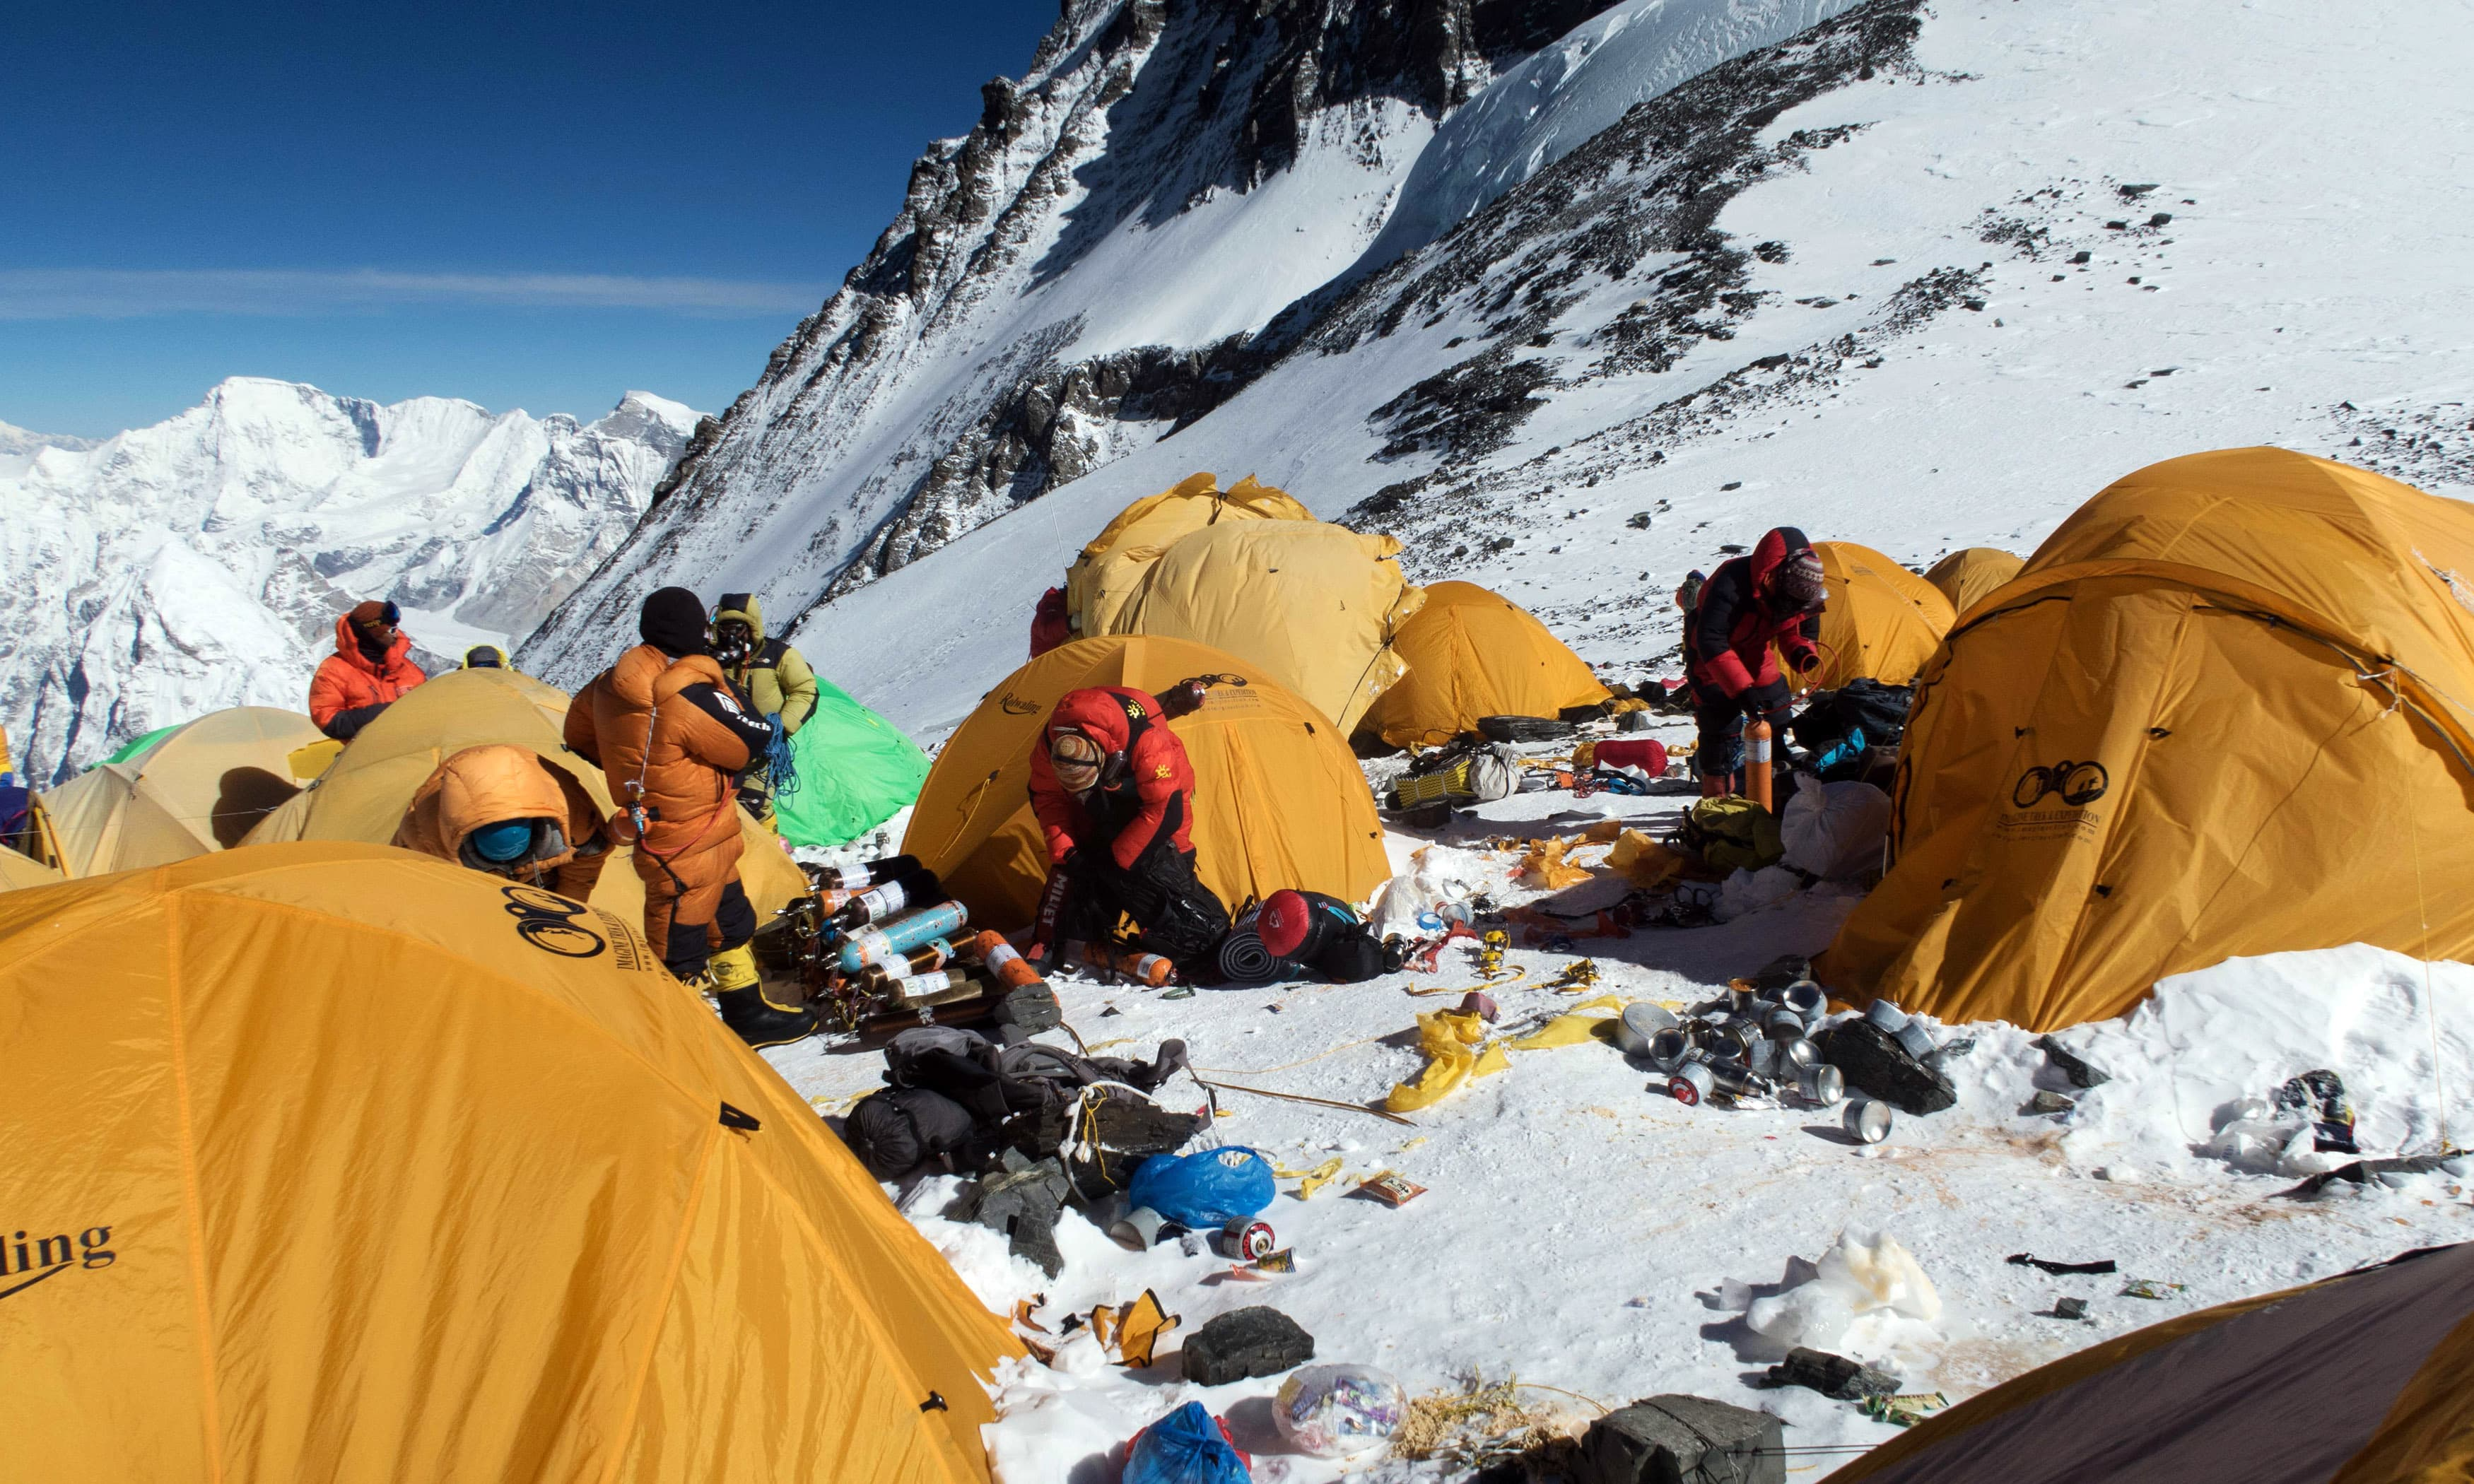 Melting glaciers caused by global warming are exposing trash that has accumulated on the mountain for decades. —AFP